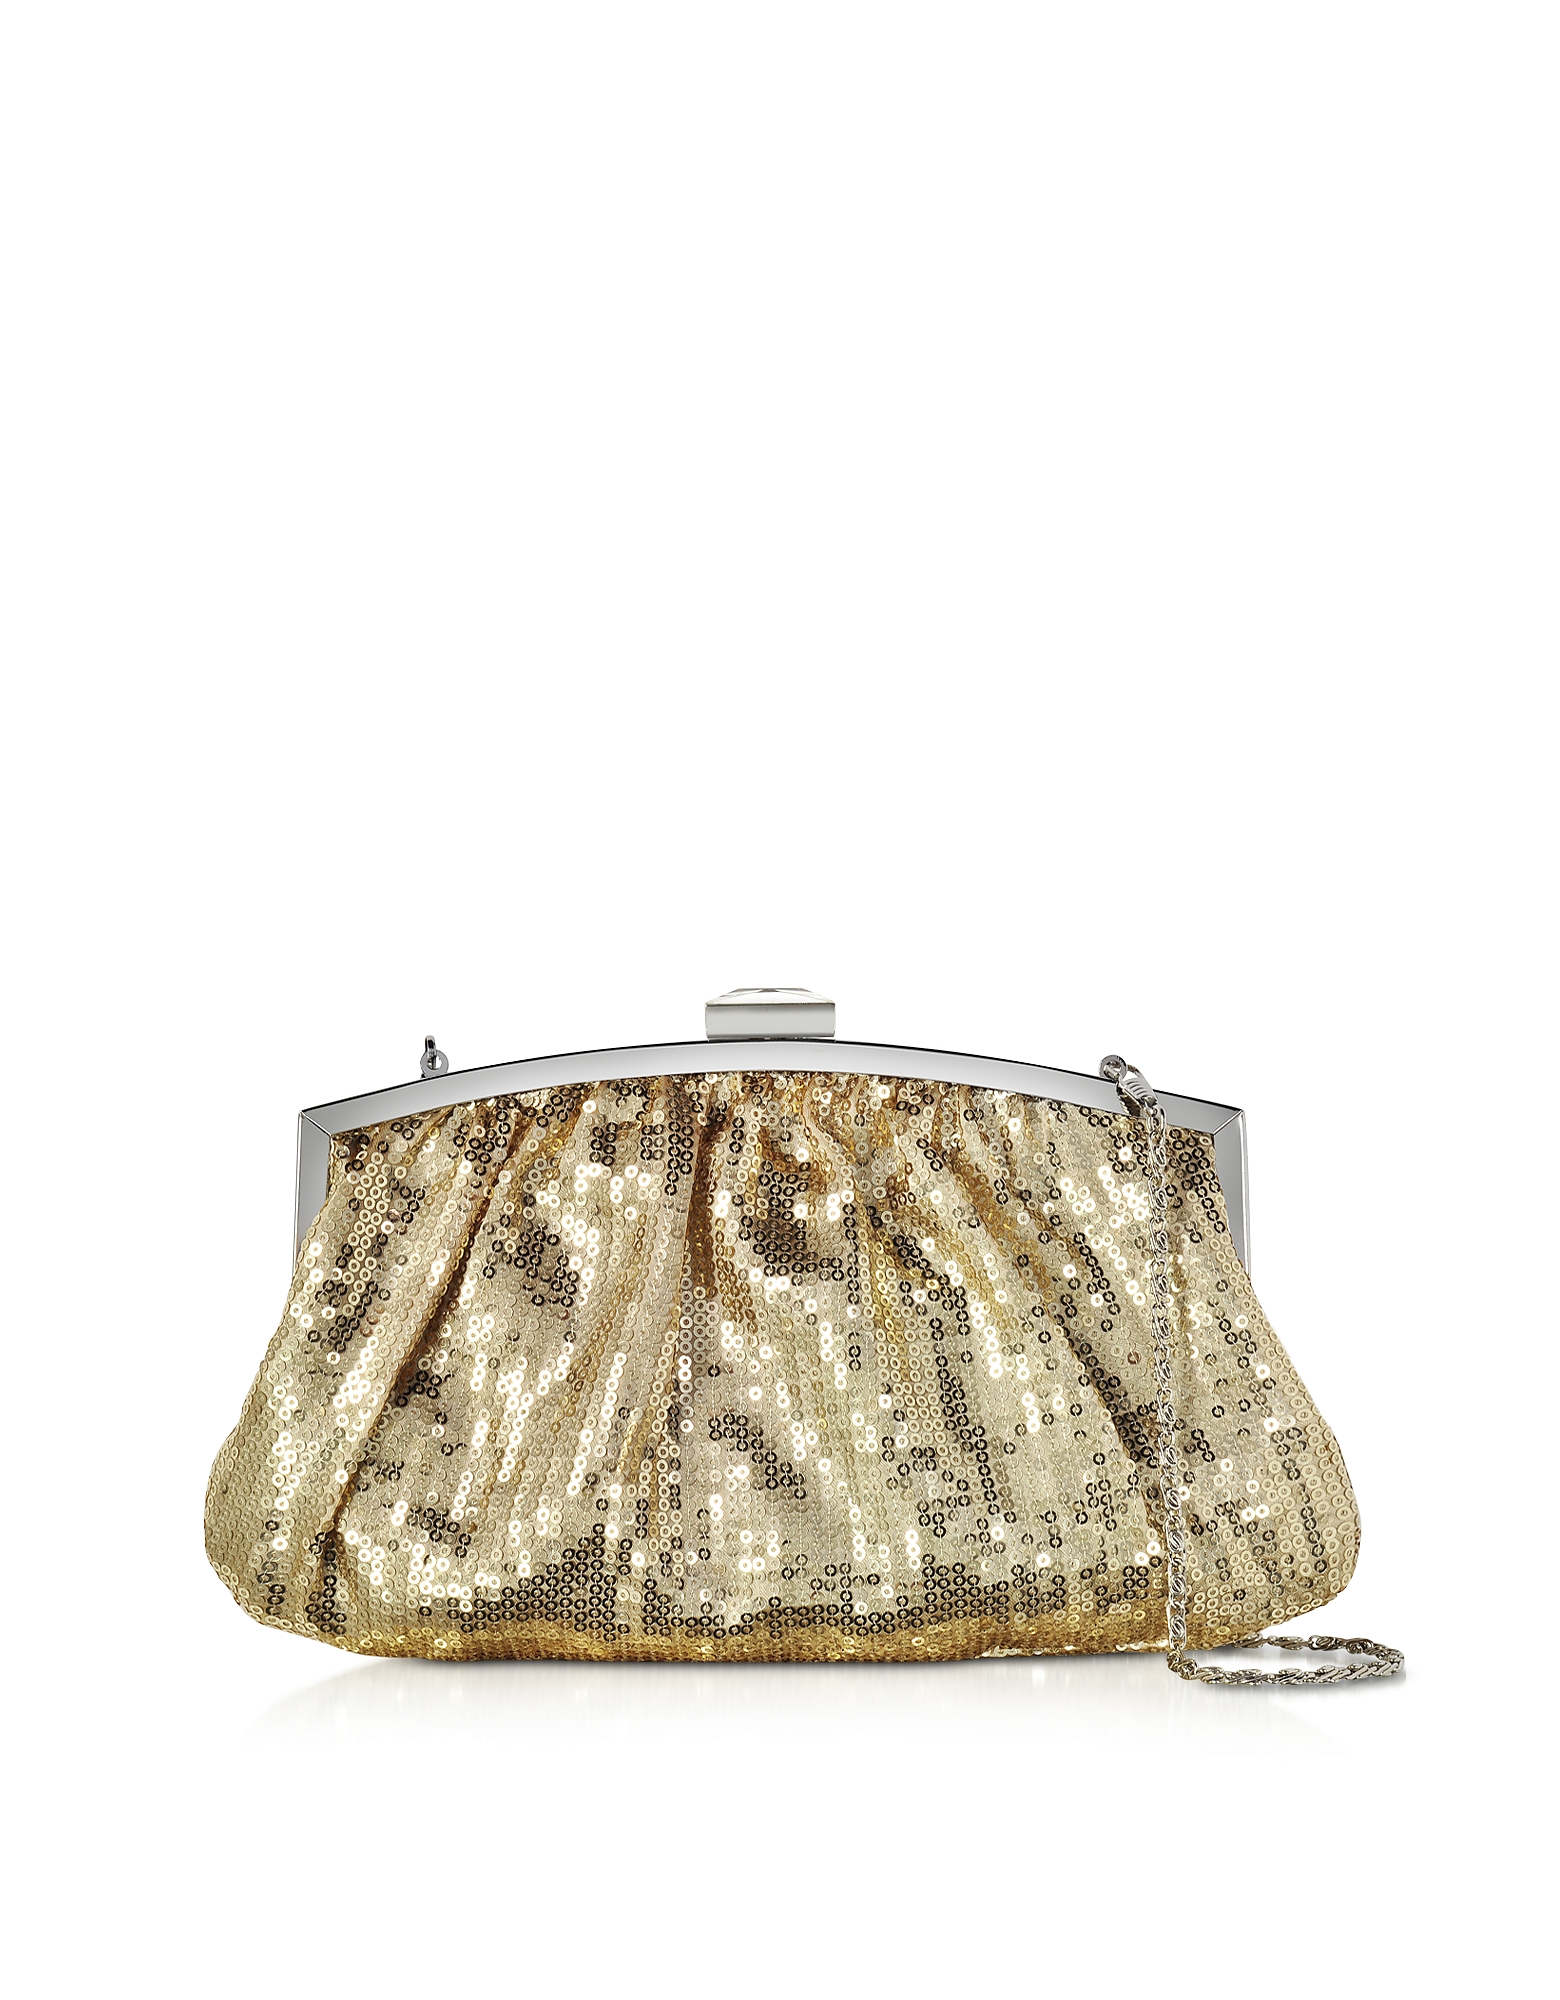 Julia Cocco' Handbags, Micro Sequins Clutch w/Chain Strap